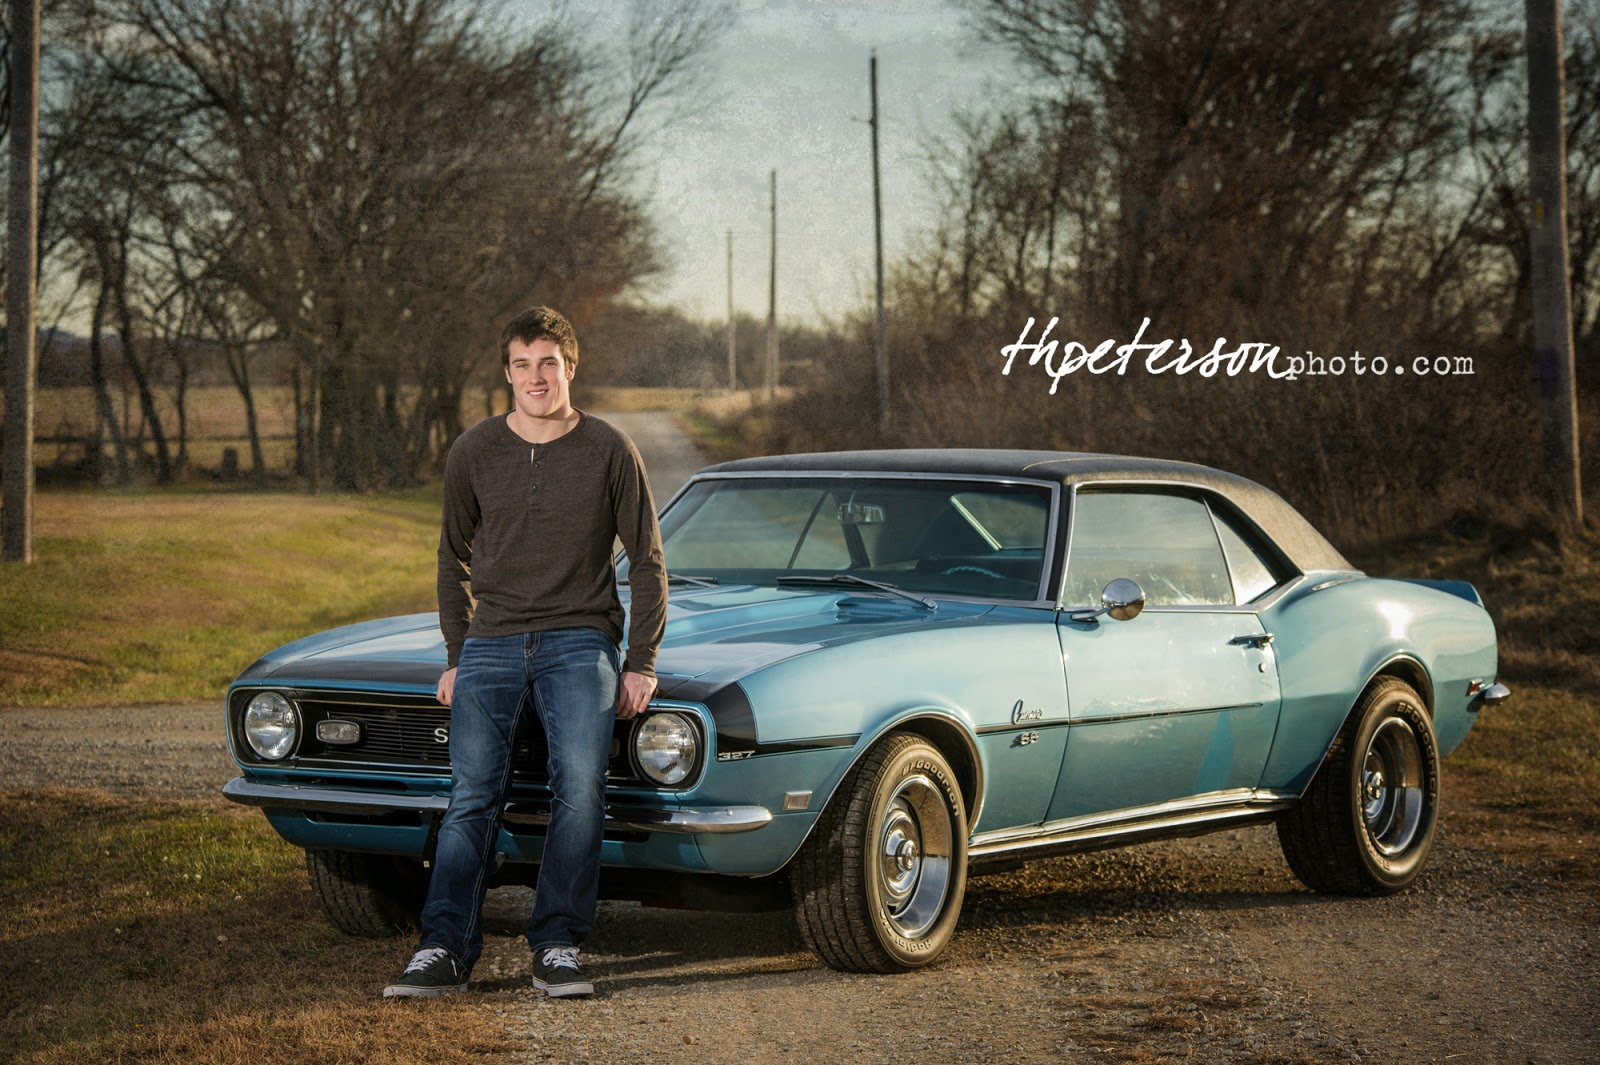 JT Lincoln Osage City HS Grad Topekas Best Senior Portrait - Osage city ks car show